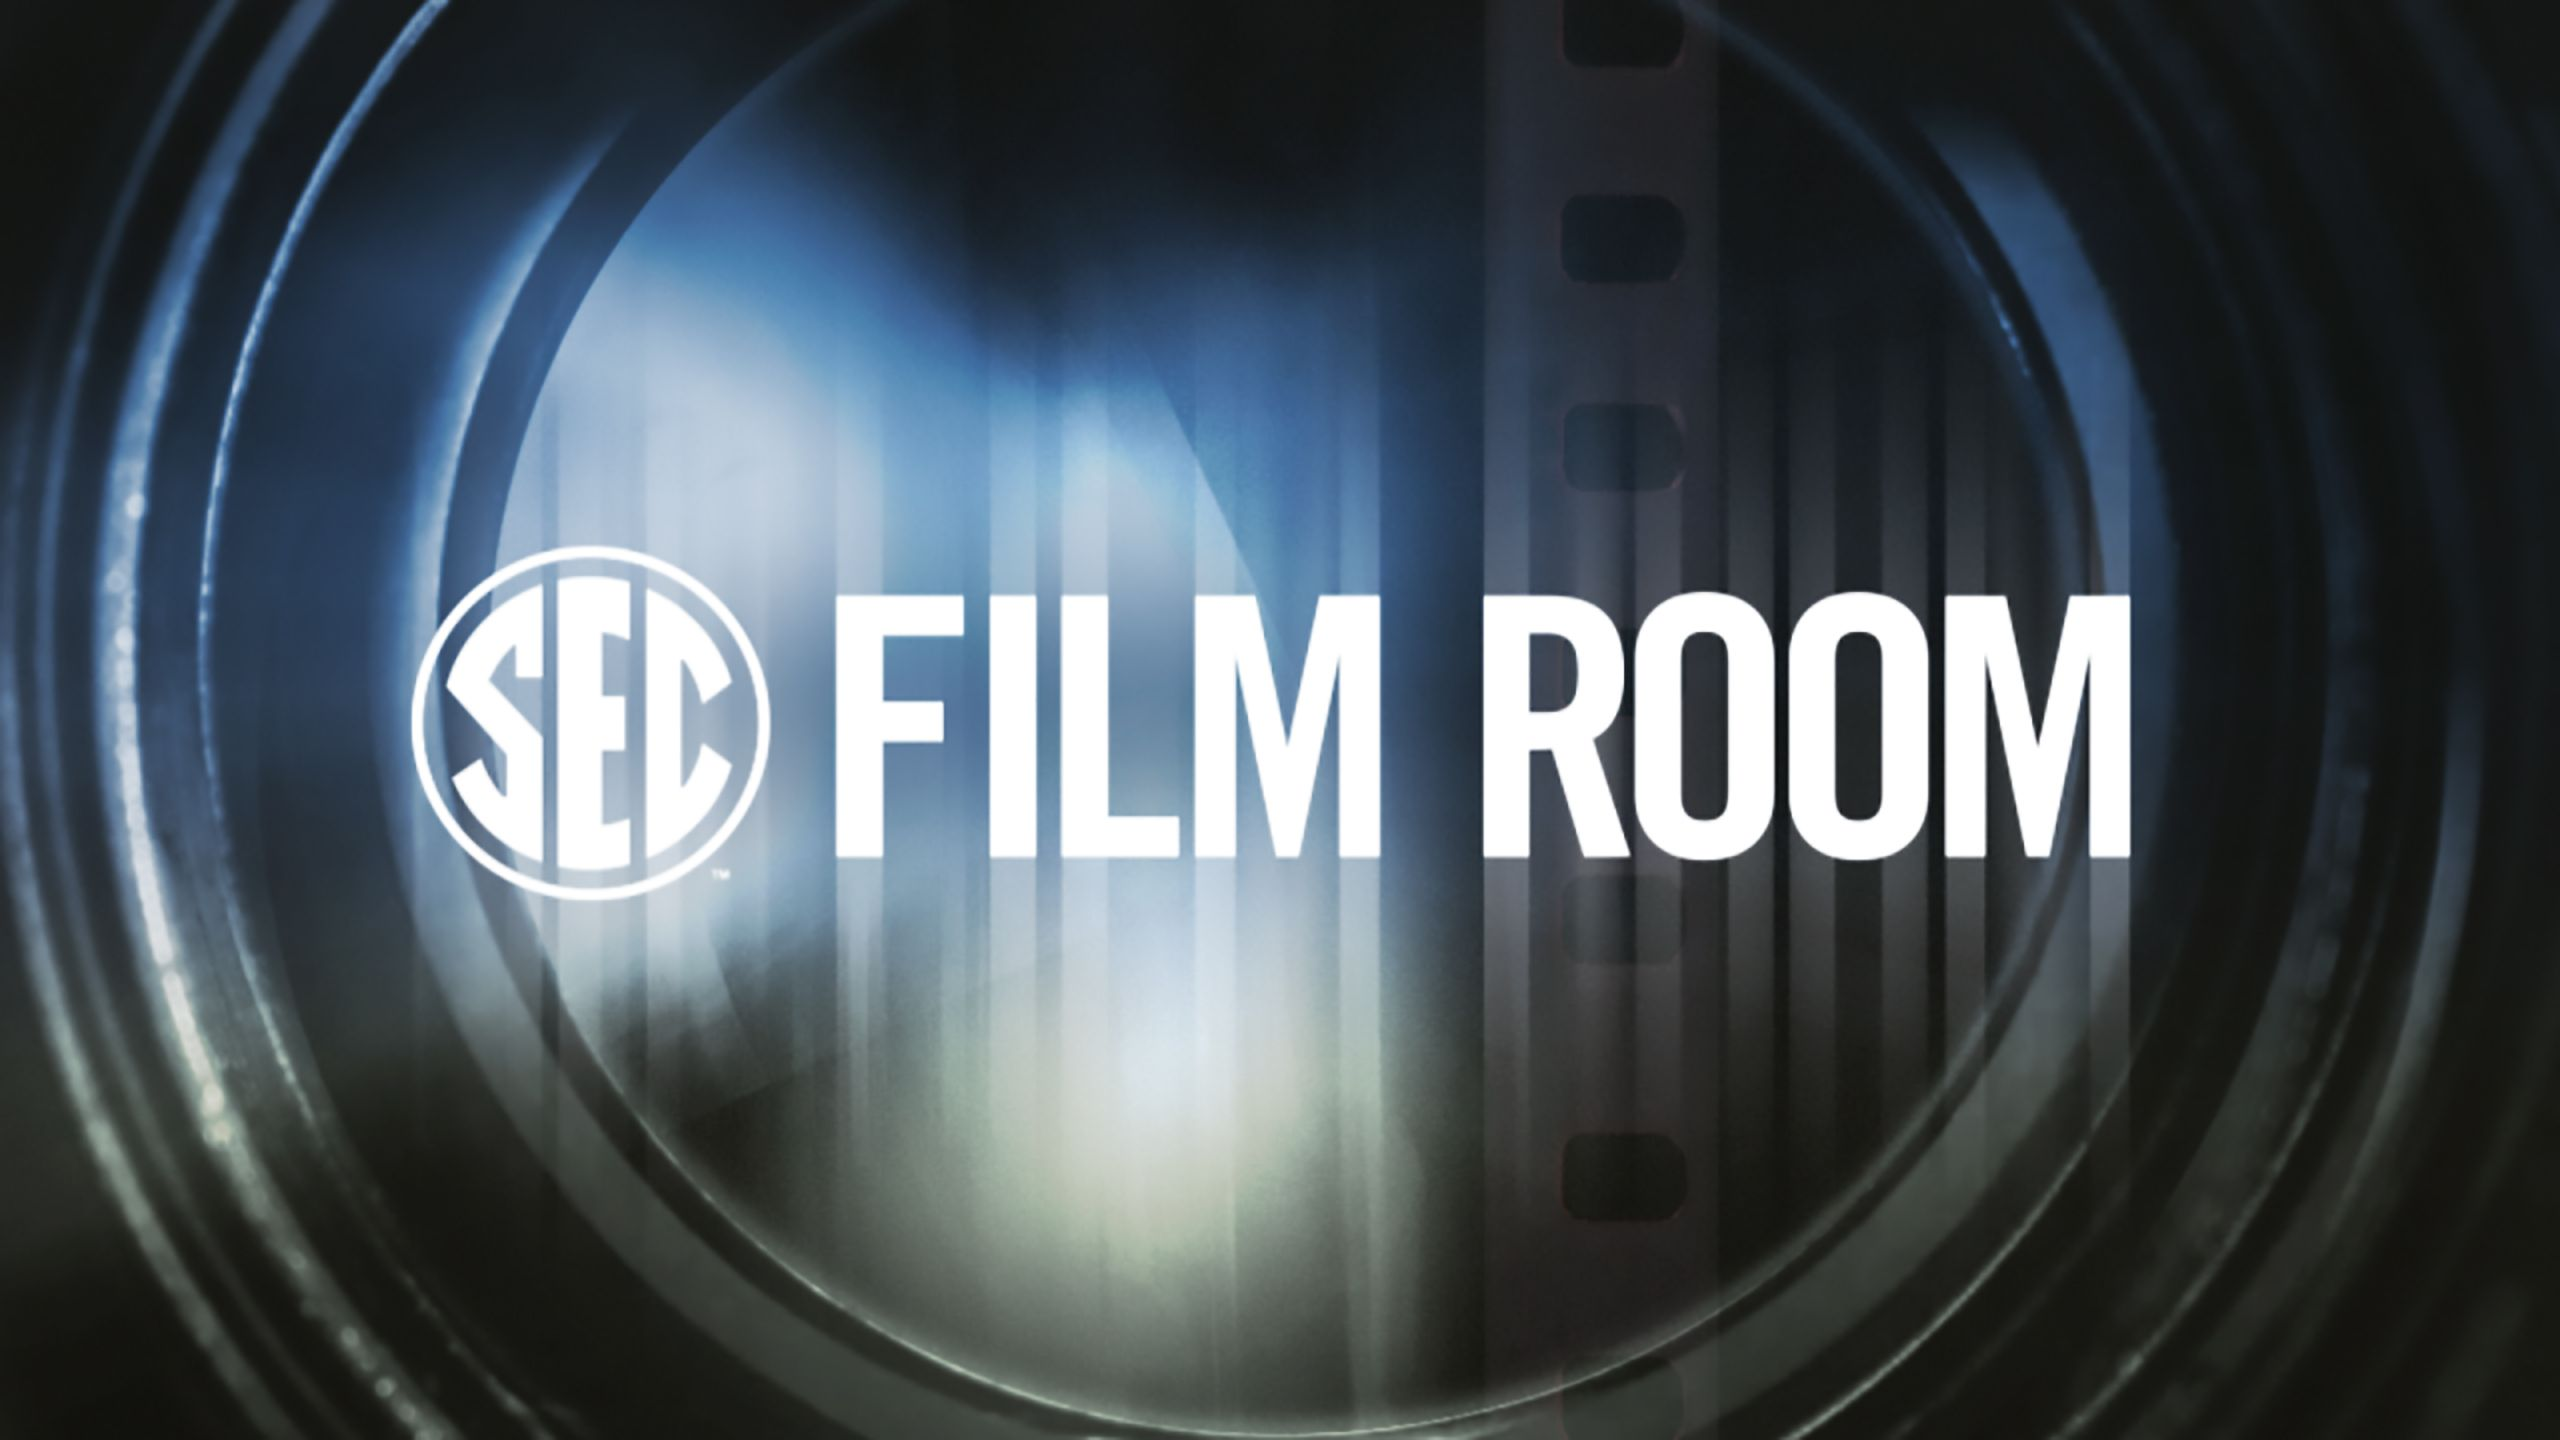 Best of SEC Film Room